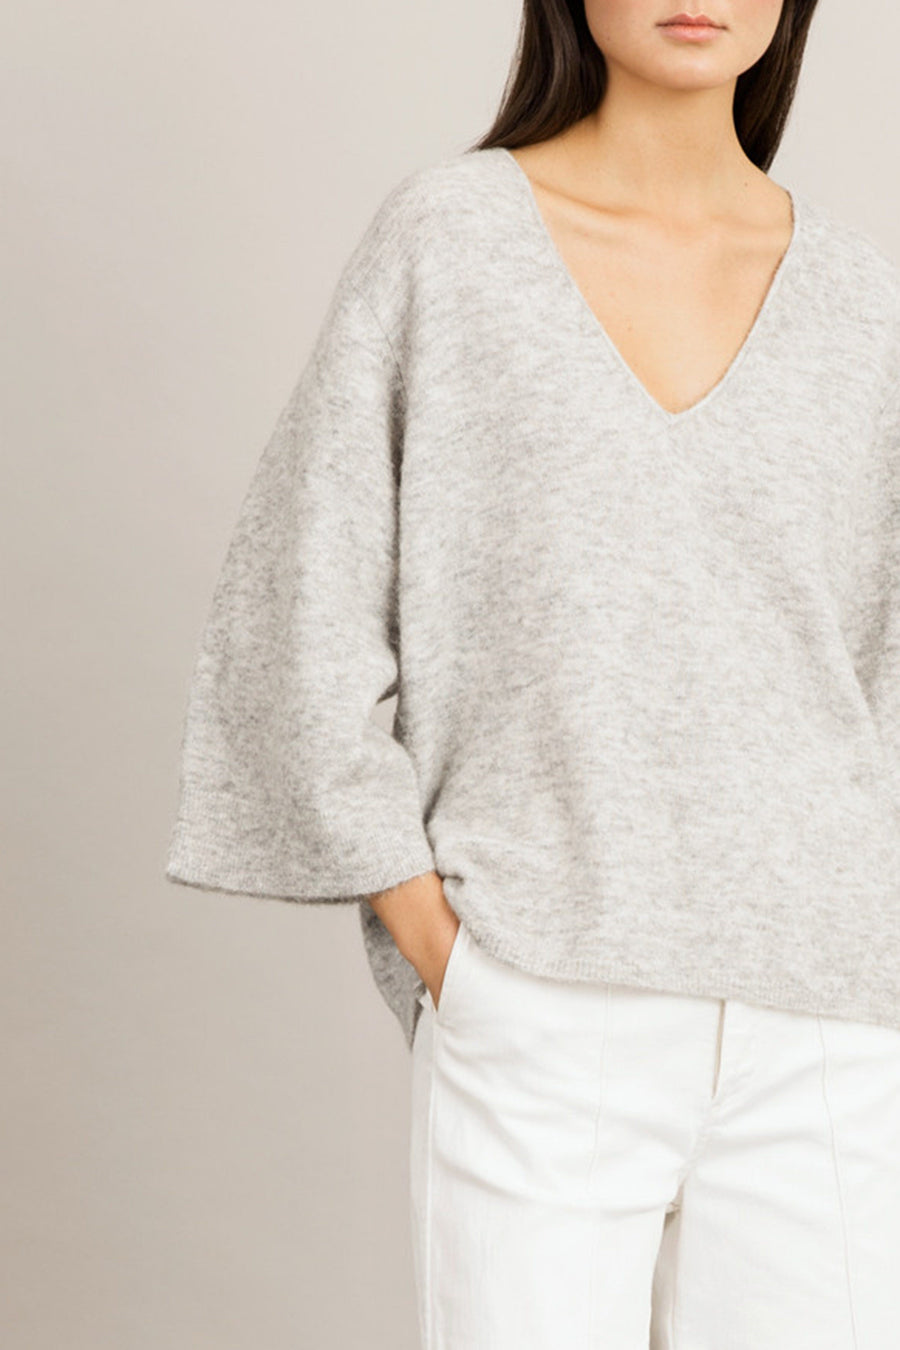 ENNA SWEATER - LIGHT GREY Knitwear Stylein